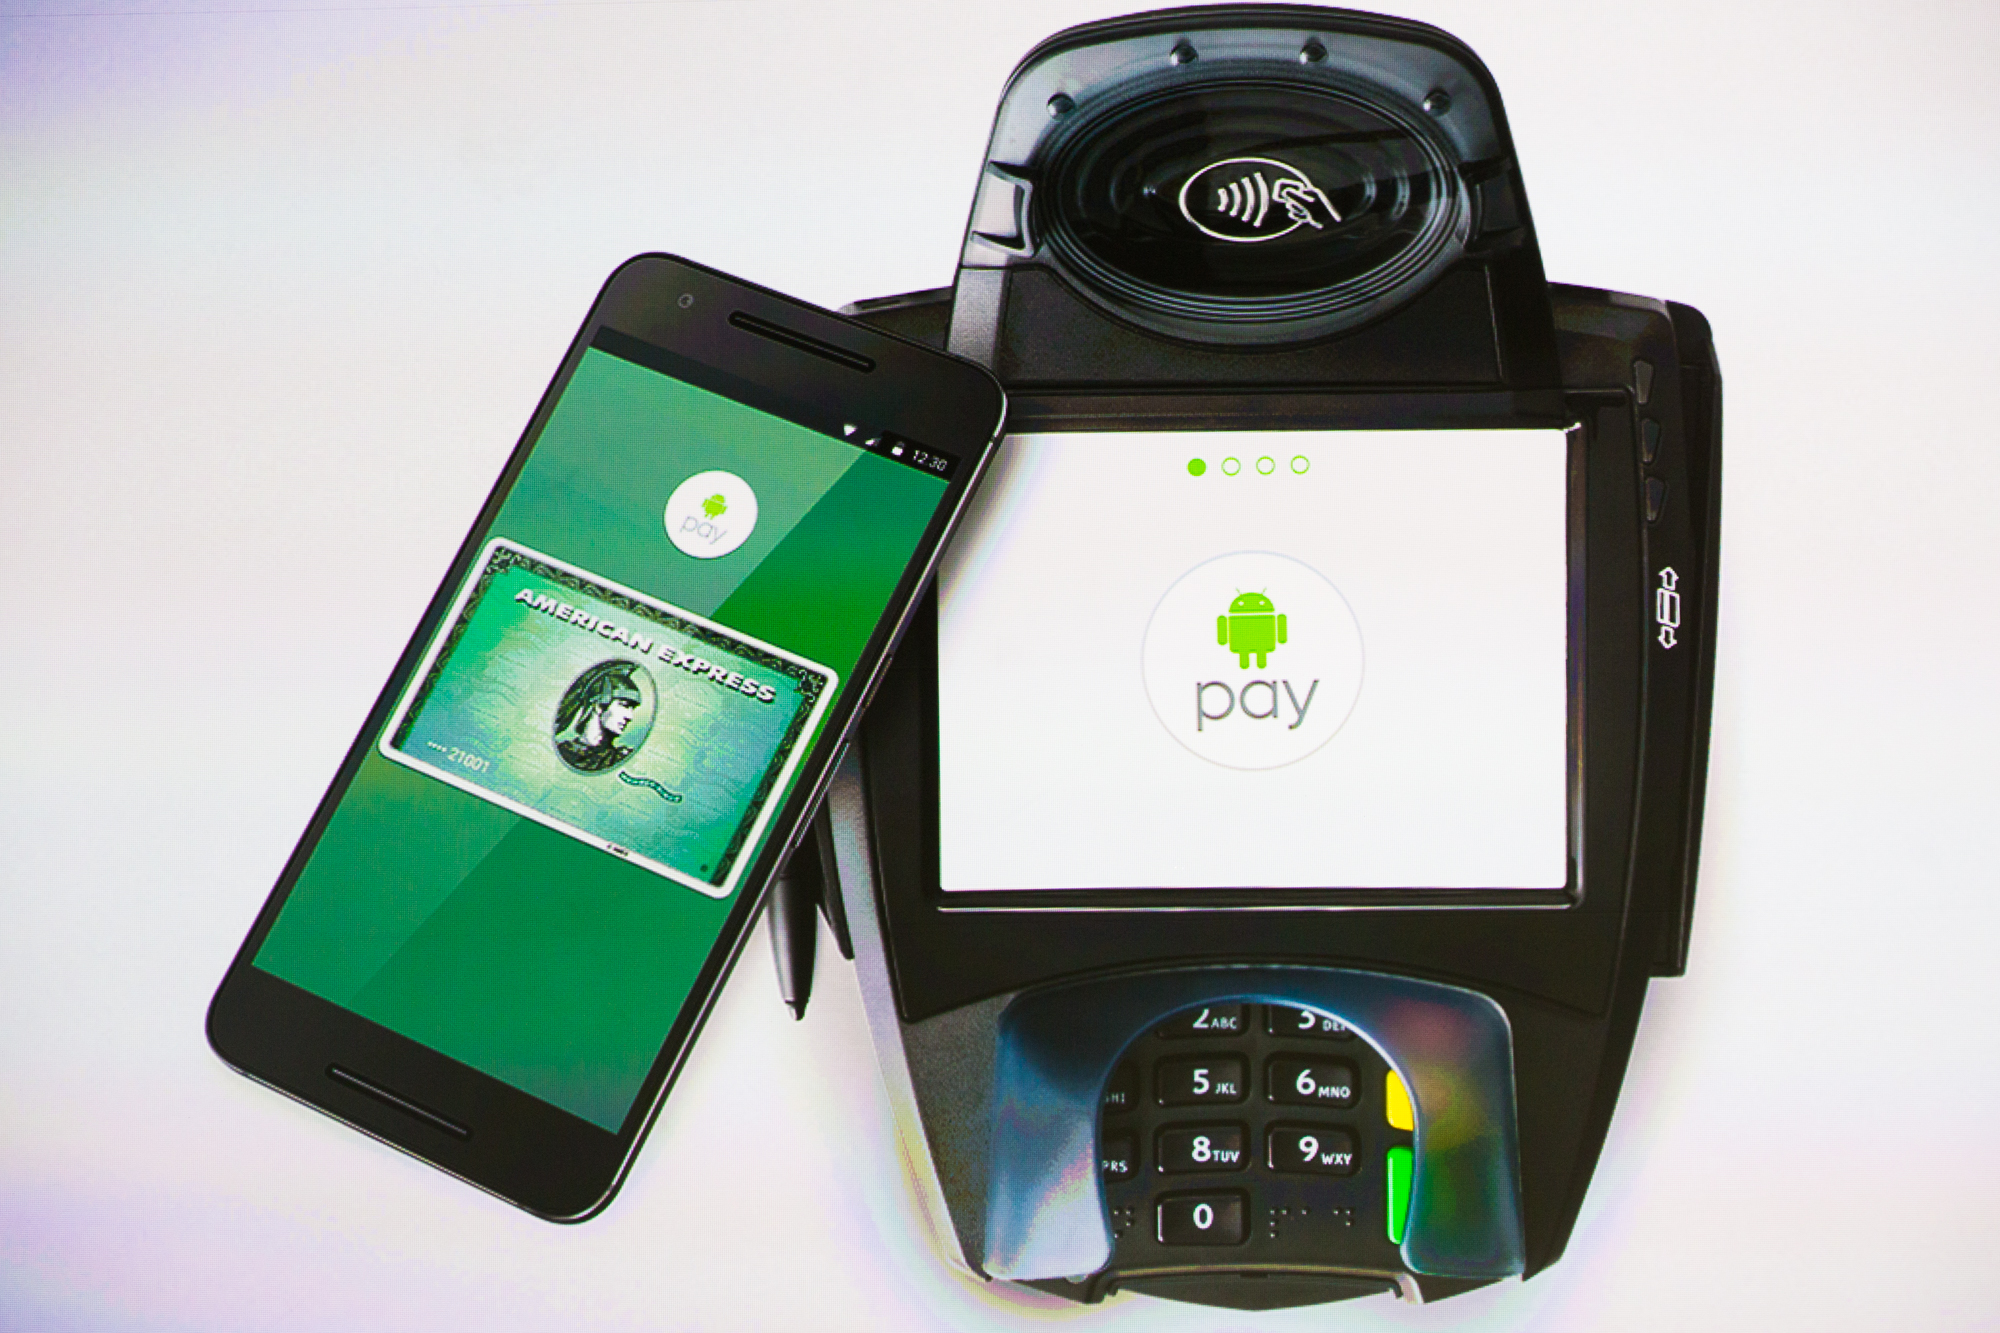 google-092915-american-express-android-pay-mobile-payments-5719.jpg